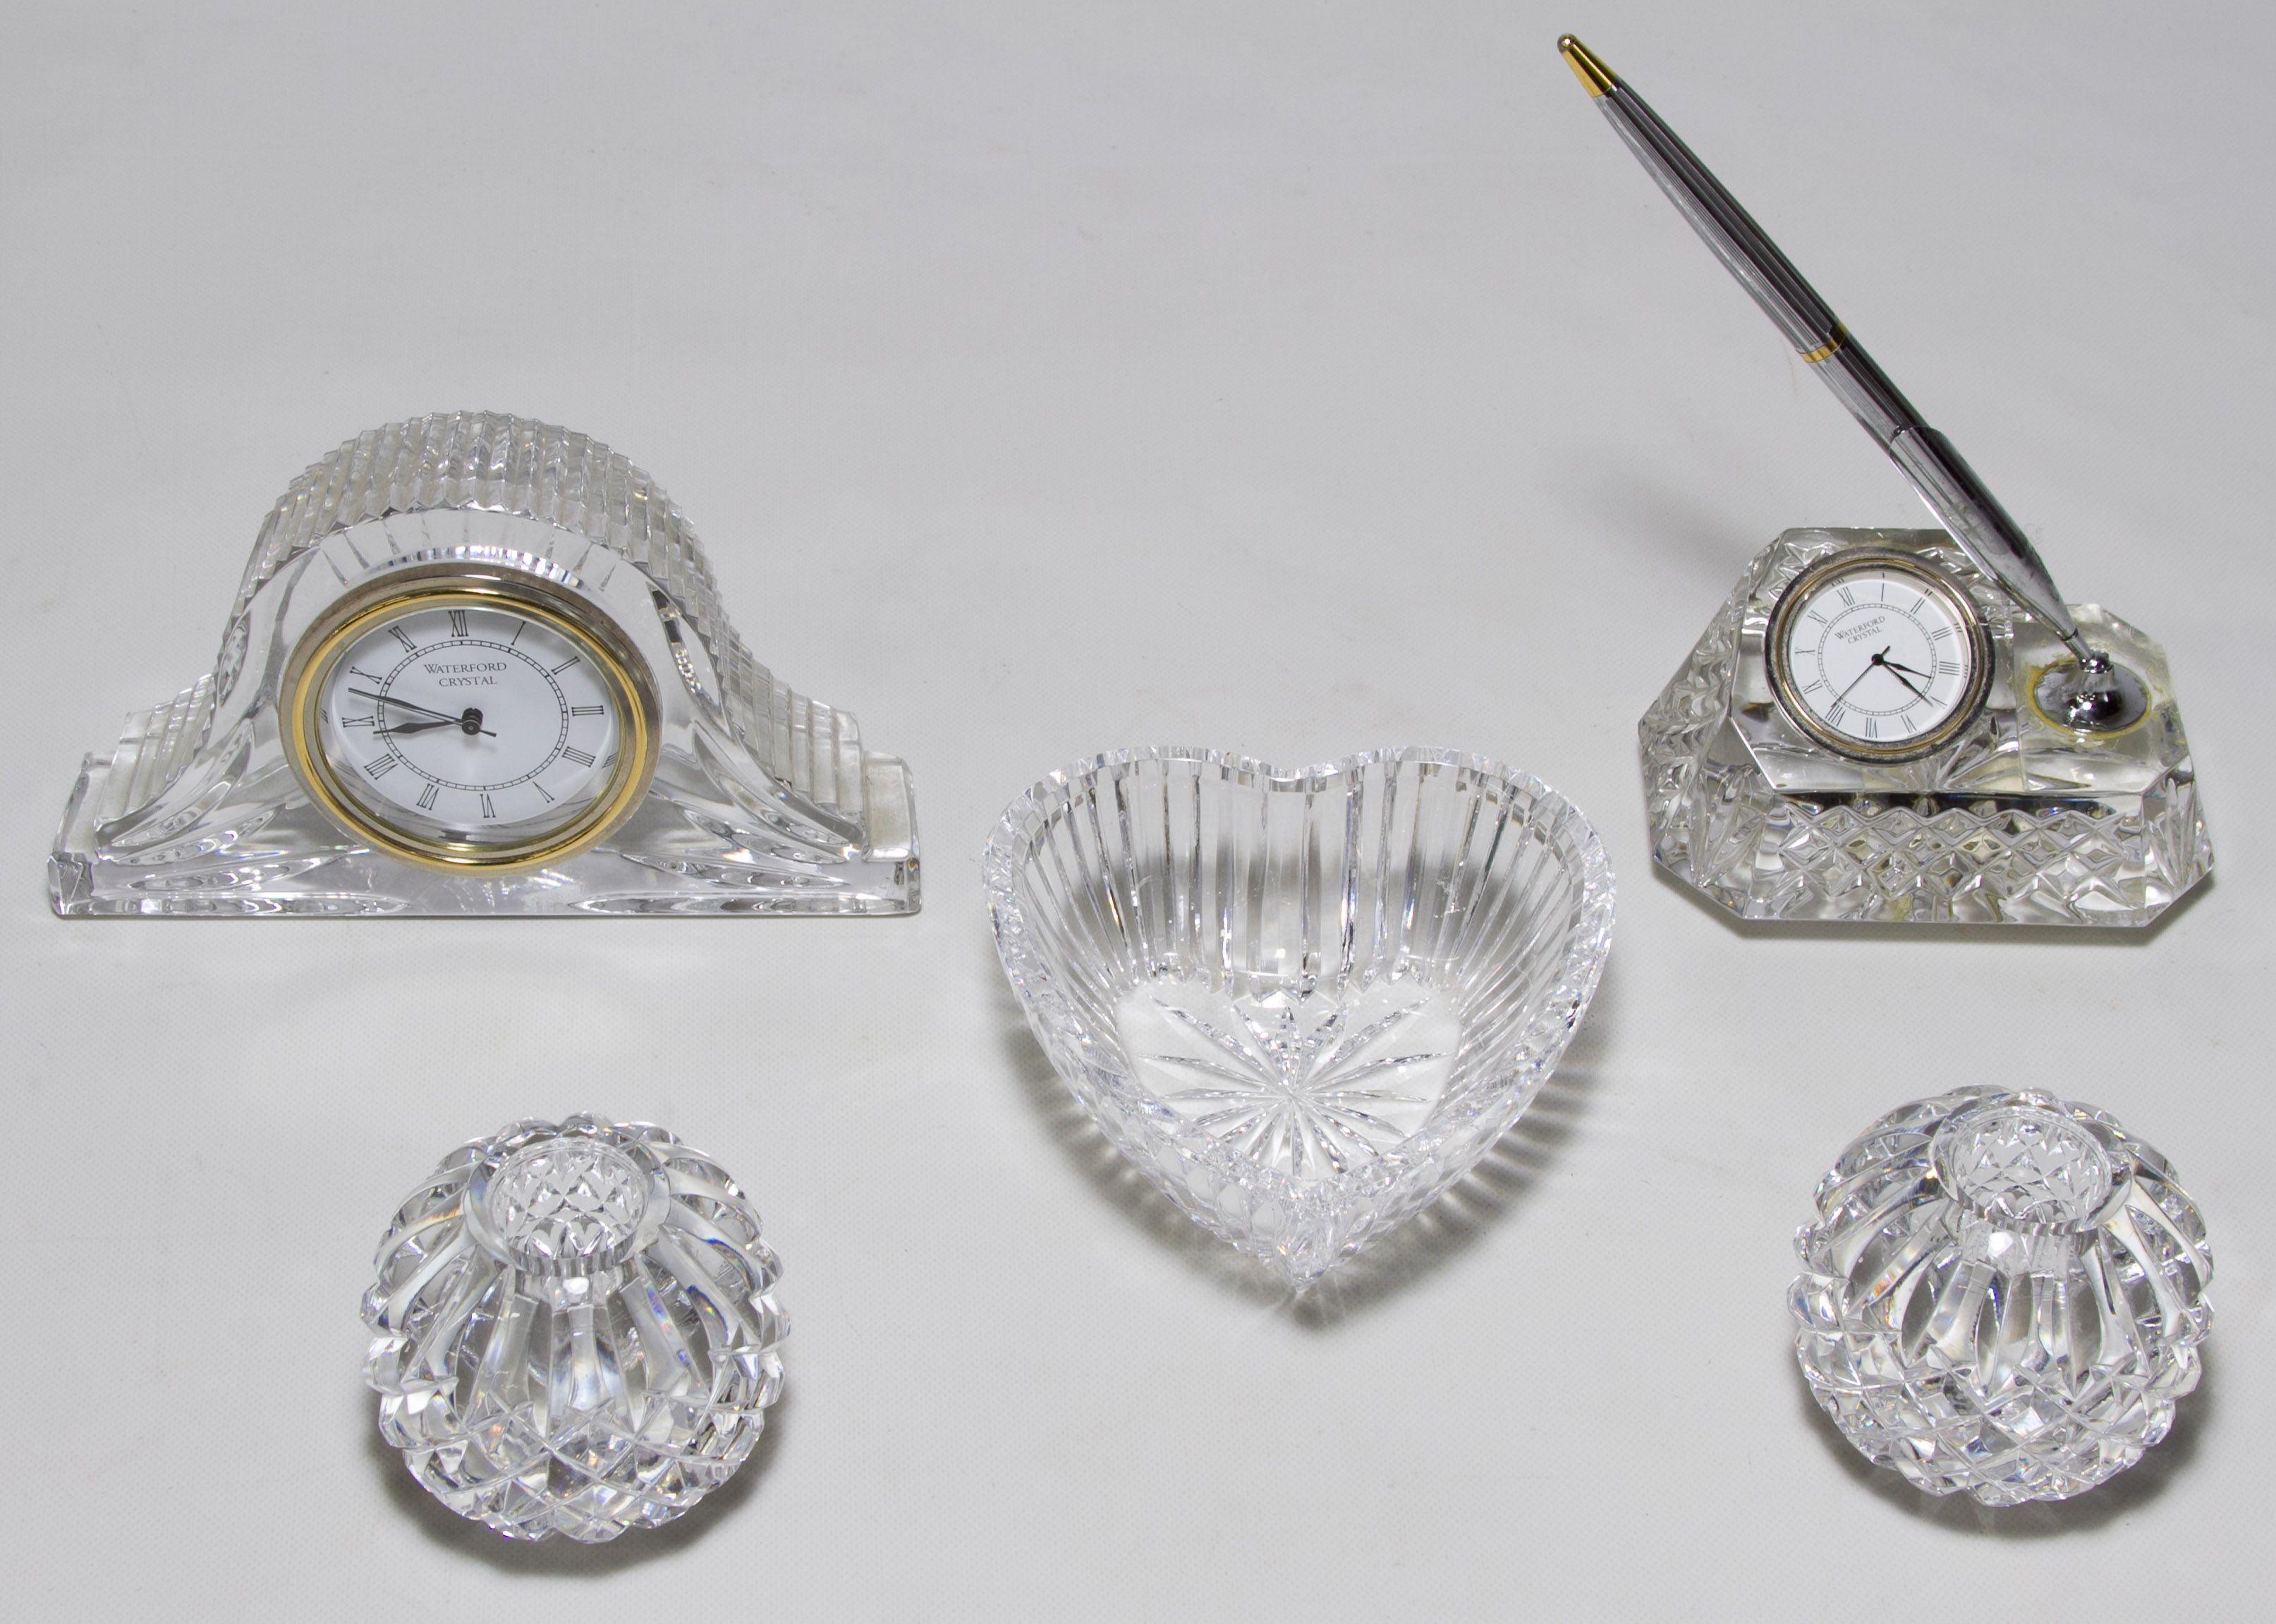 Lot 379 Waterford Crystal Assortment Five Items Including A Pair Of Round Candlestick Holders A Heart Shaped Trinket D Waterford Crystal Crystals Parker Pen